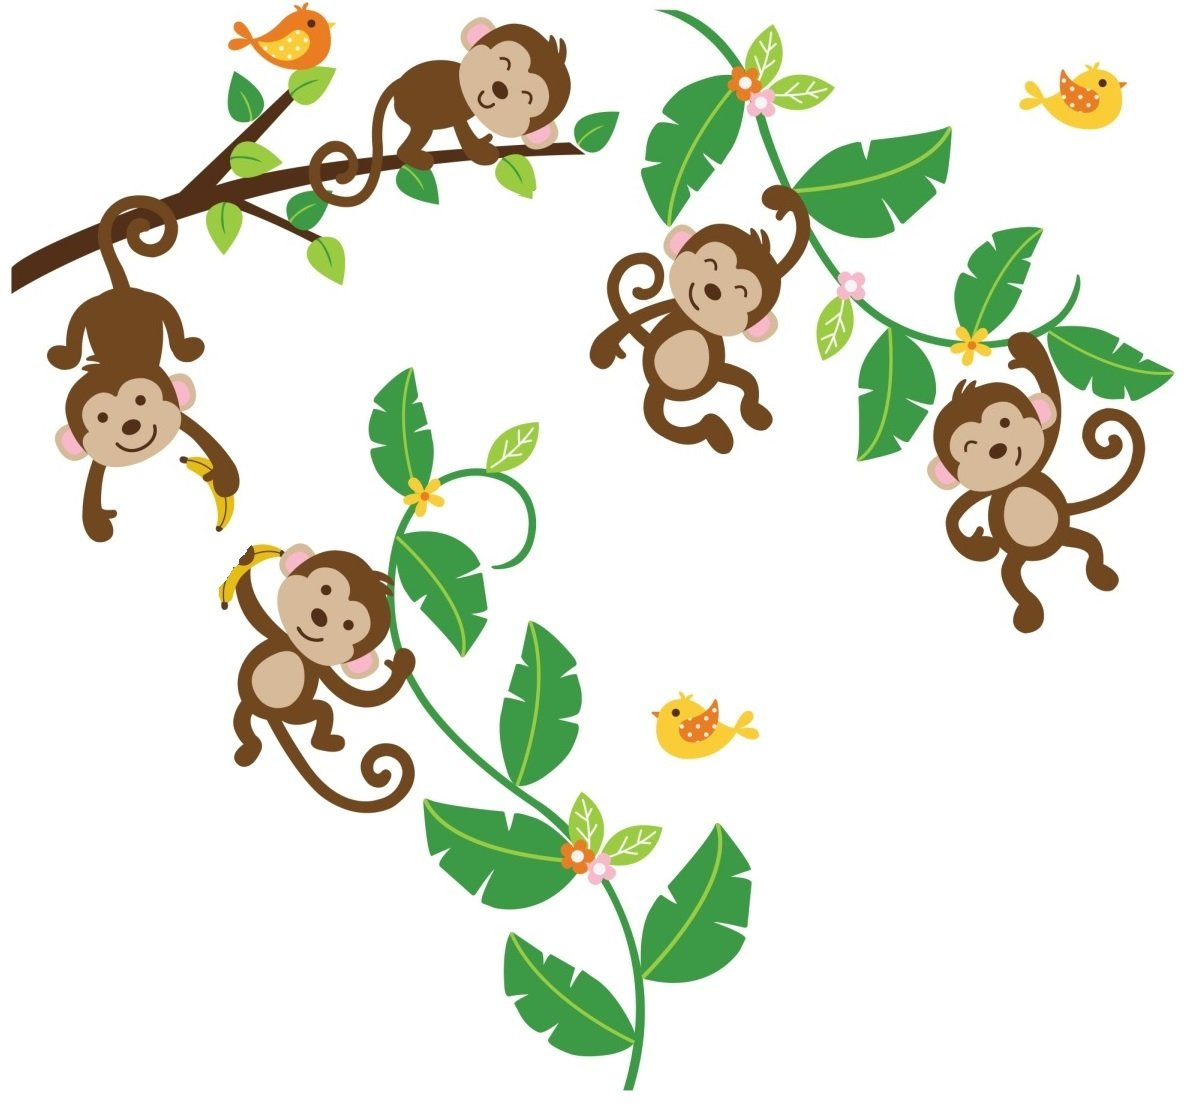 Monkey on vine clipart picture library library Monkeys Swinging on Vines Giant Peel & Stick Wall Art Sticker Decals picture library library